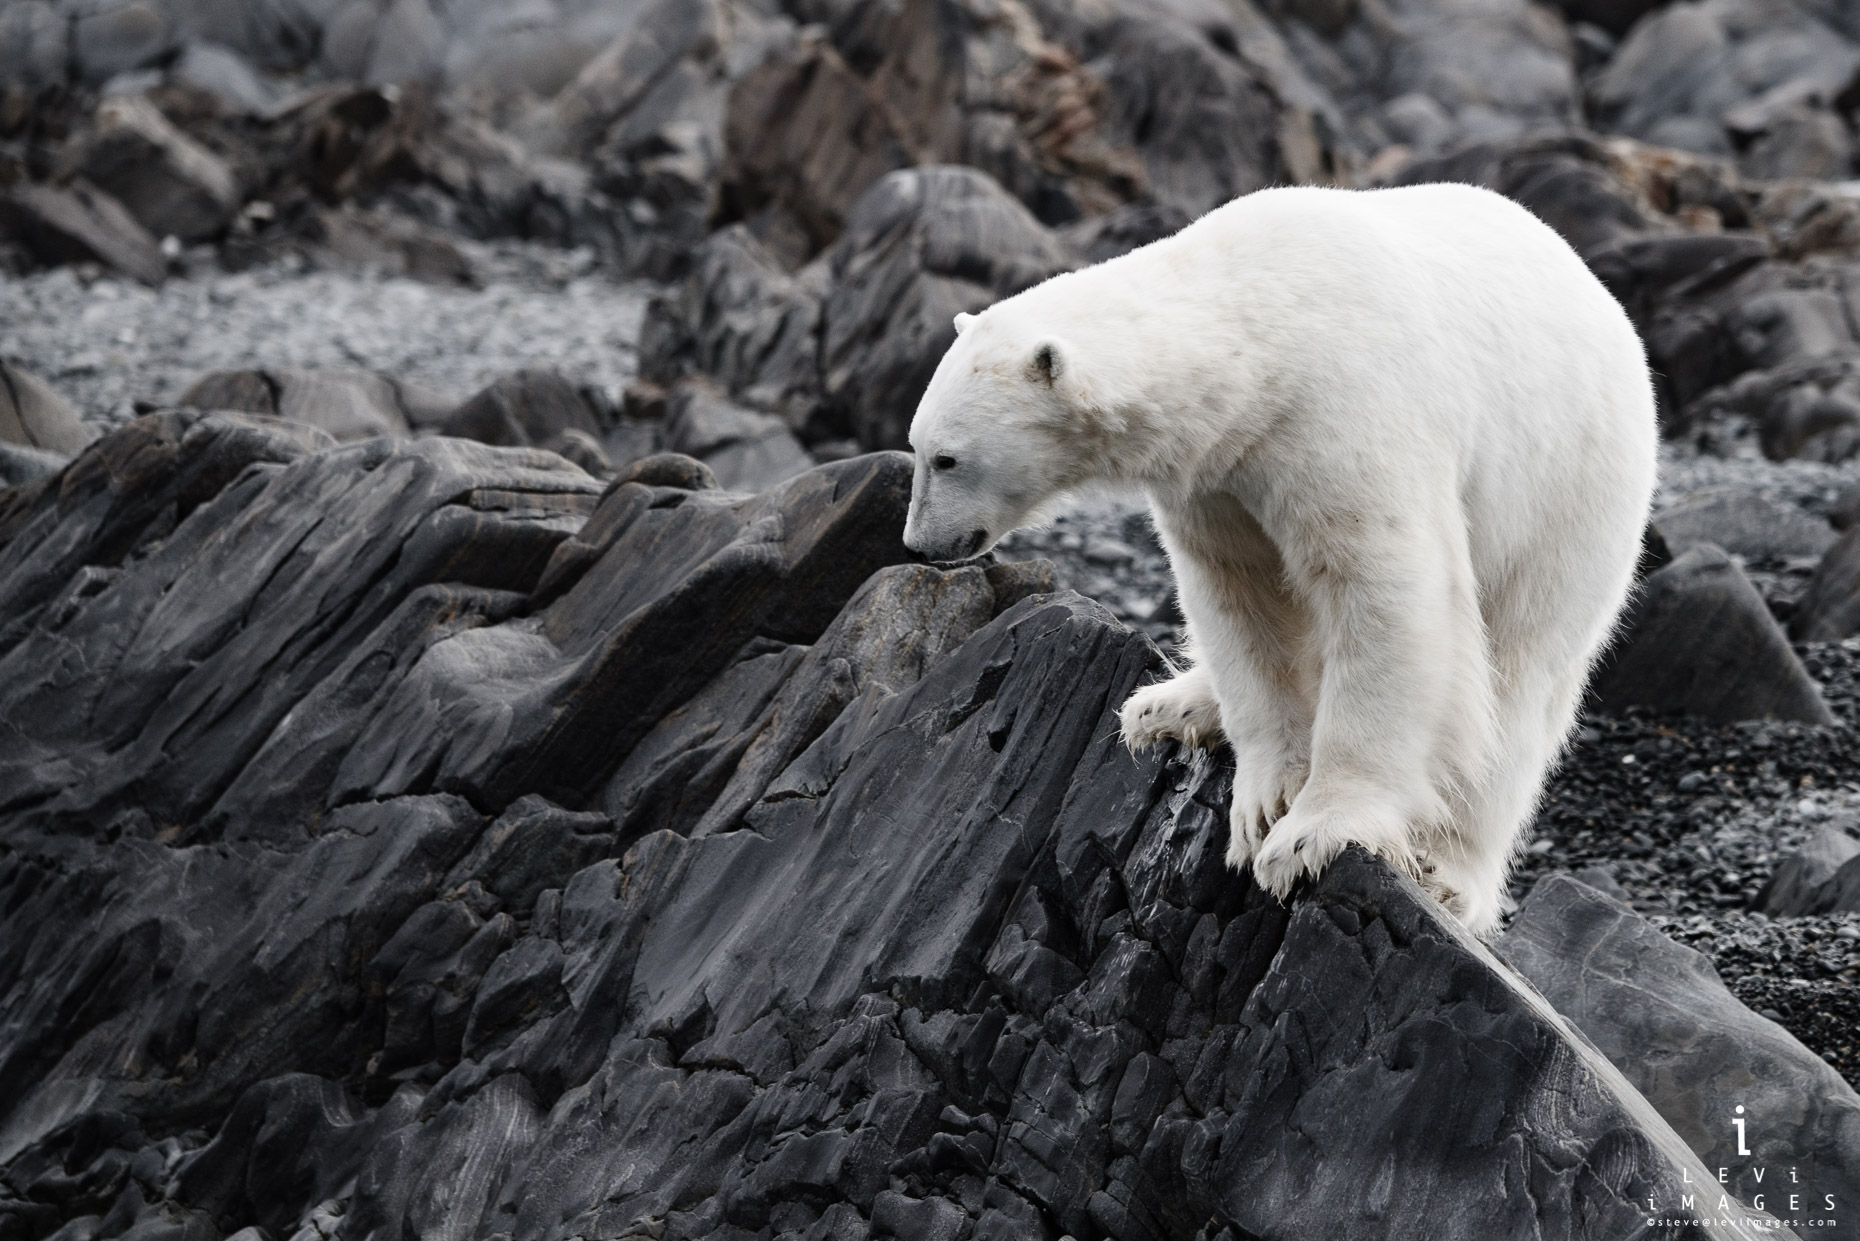 Polar bear (Ursus maritimus) on rock edge. Svalbard, Norway